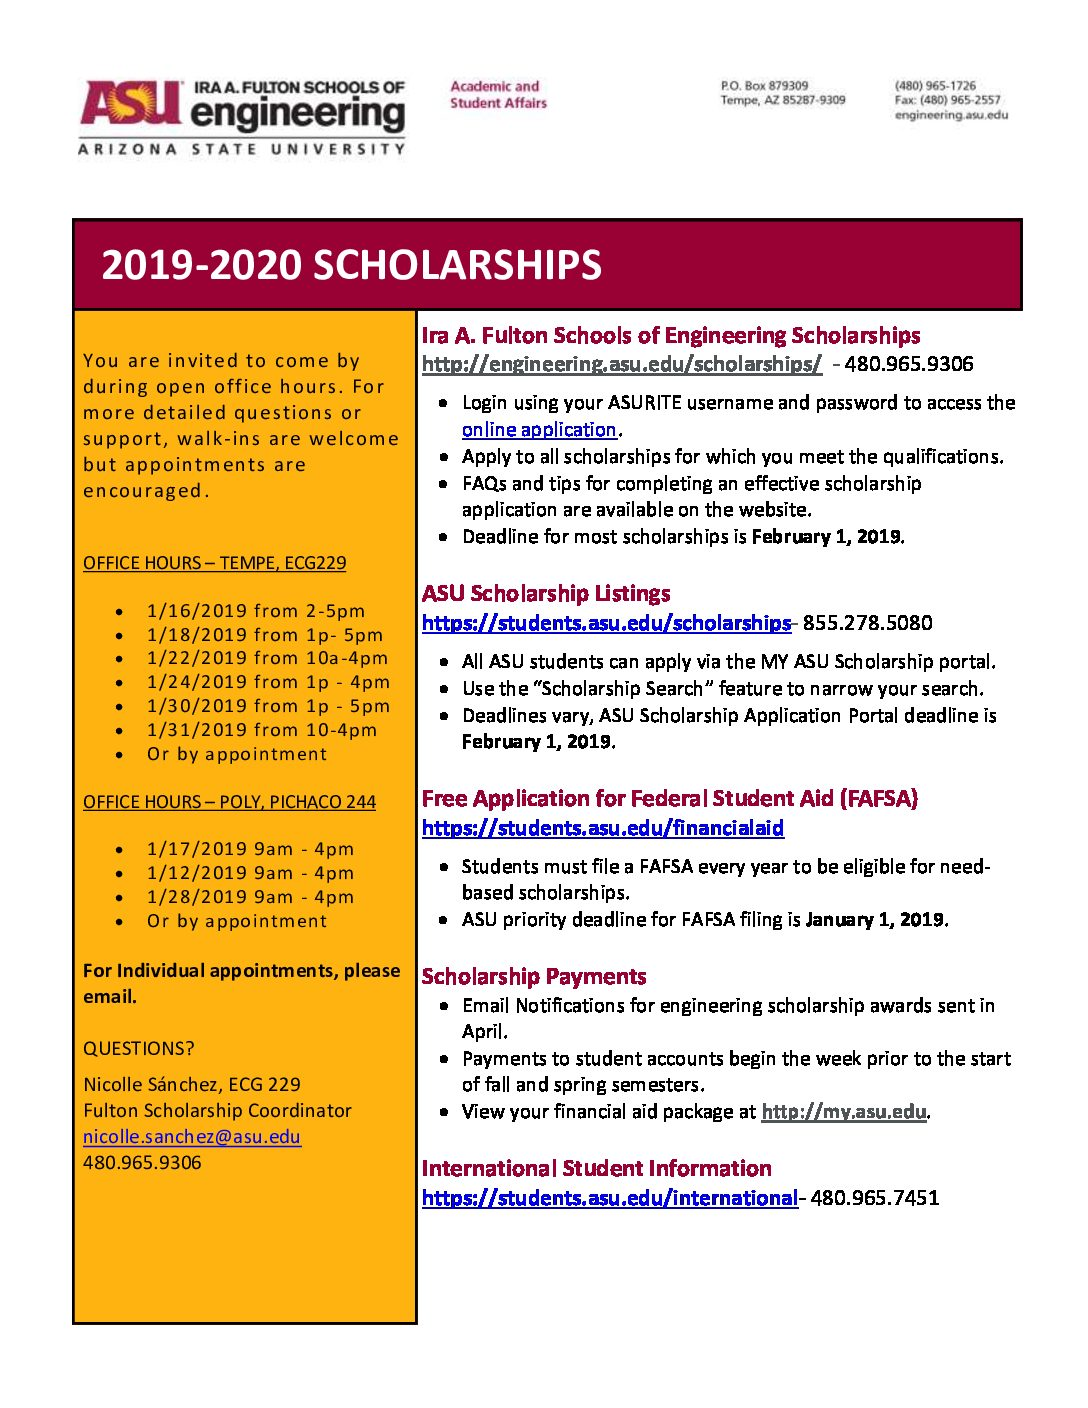 Asu Calendar 2019 Fulton Student Organizations | Reach out. Make connections. Have